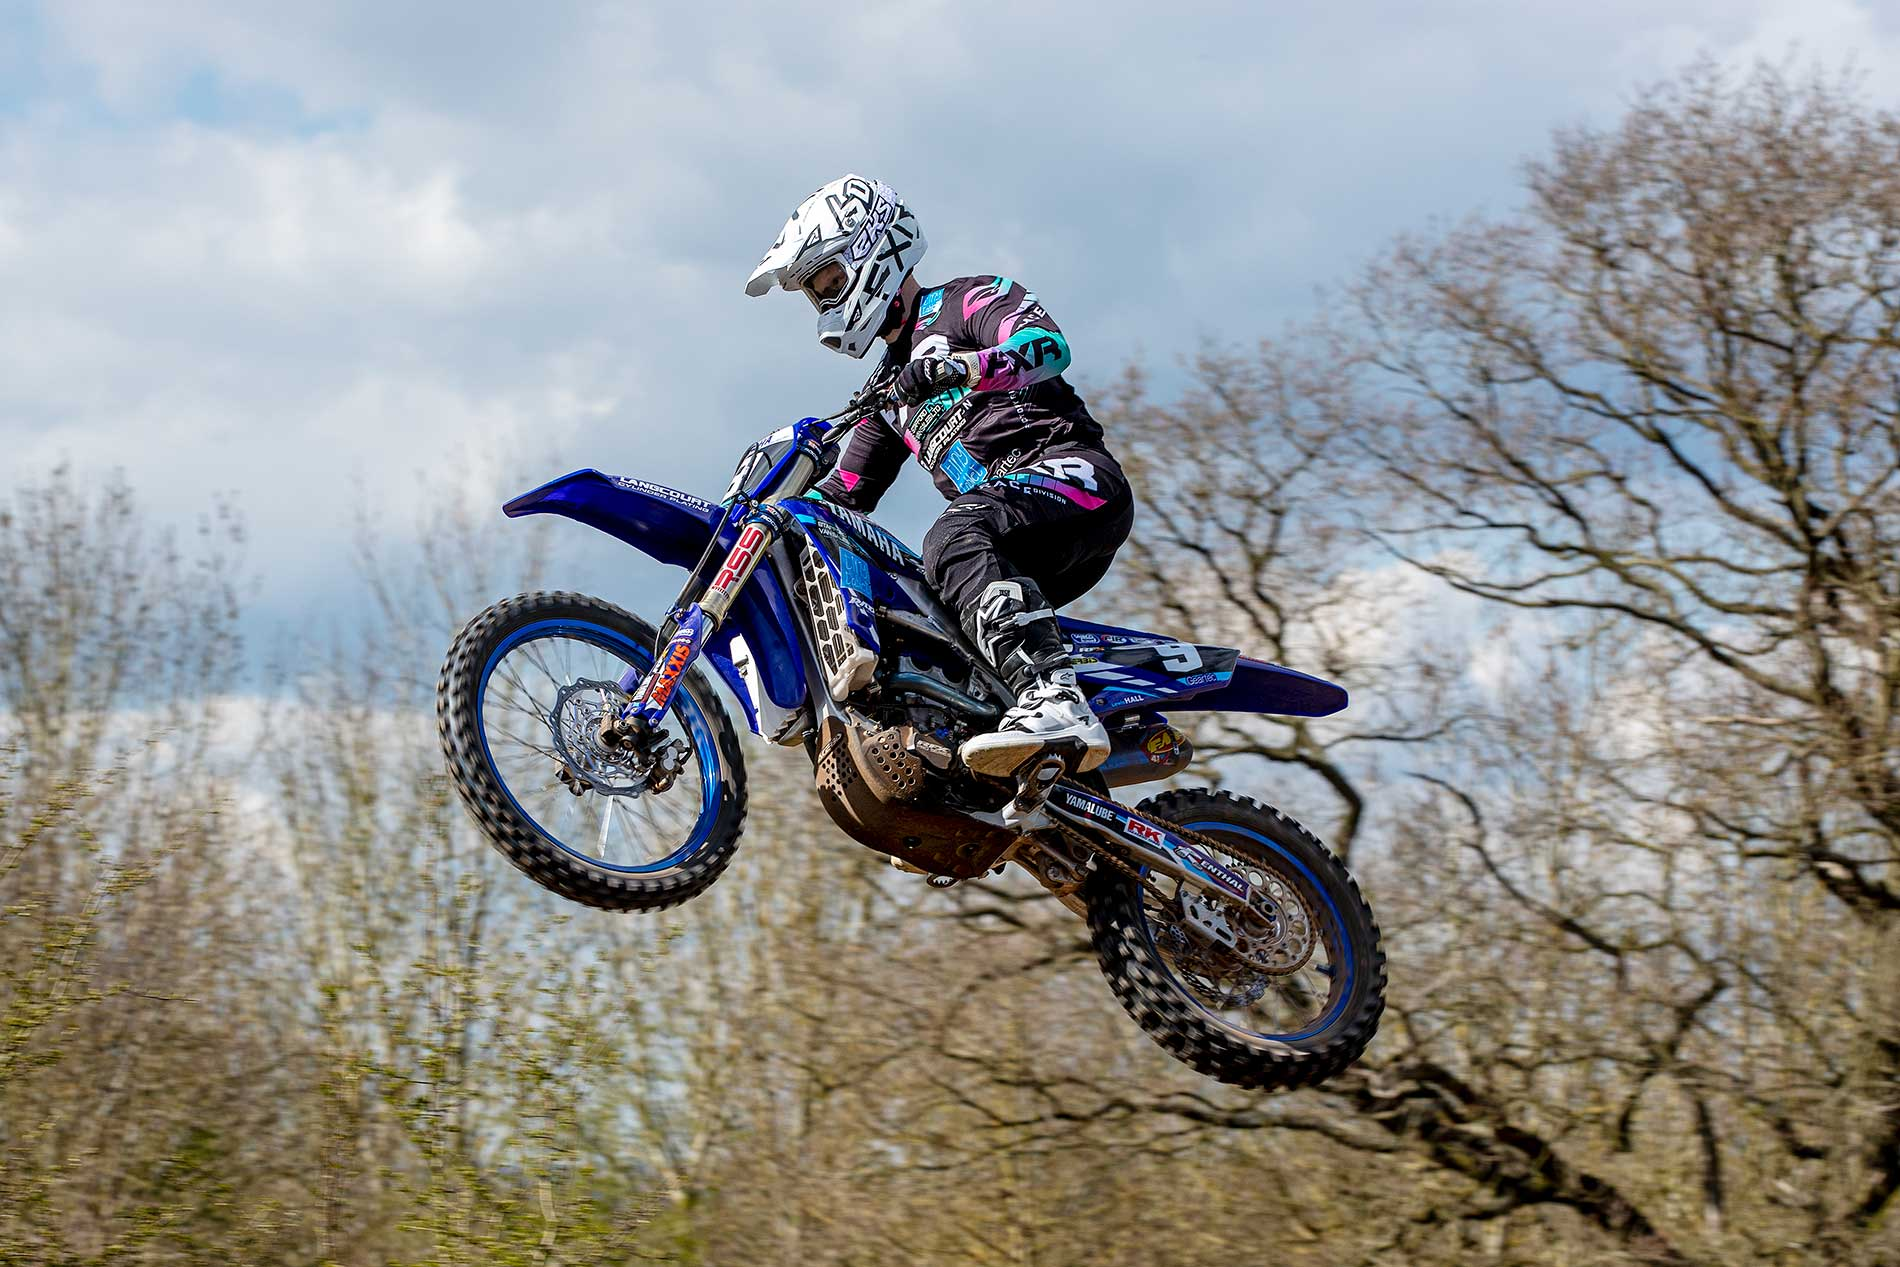 Motocross in the UK